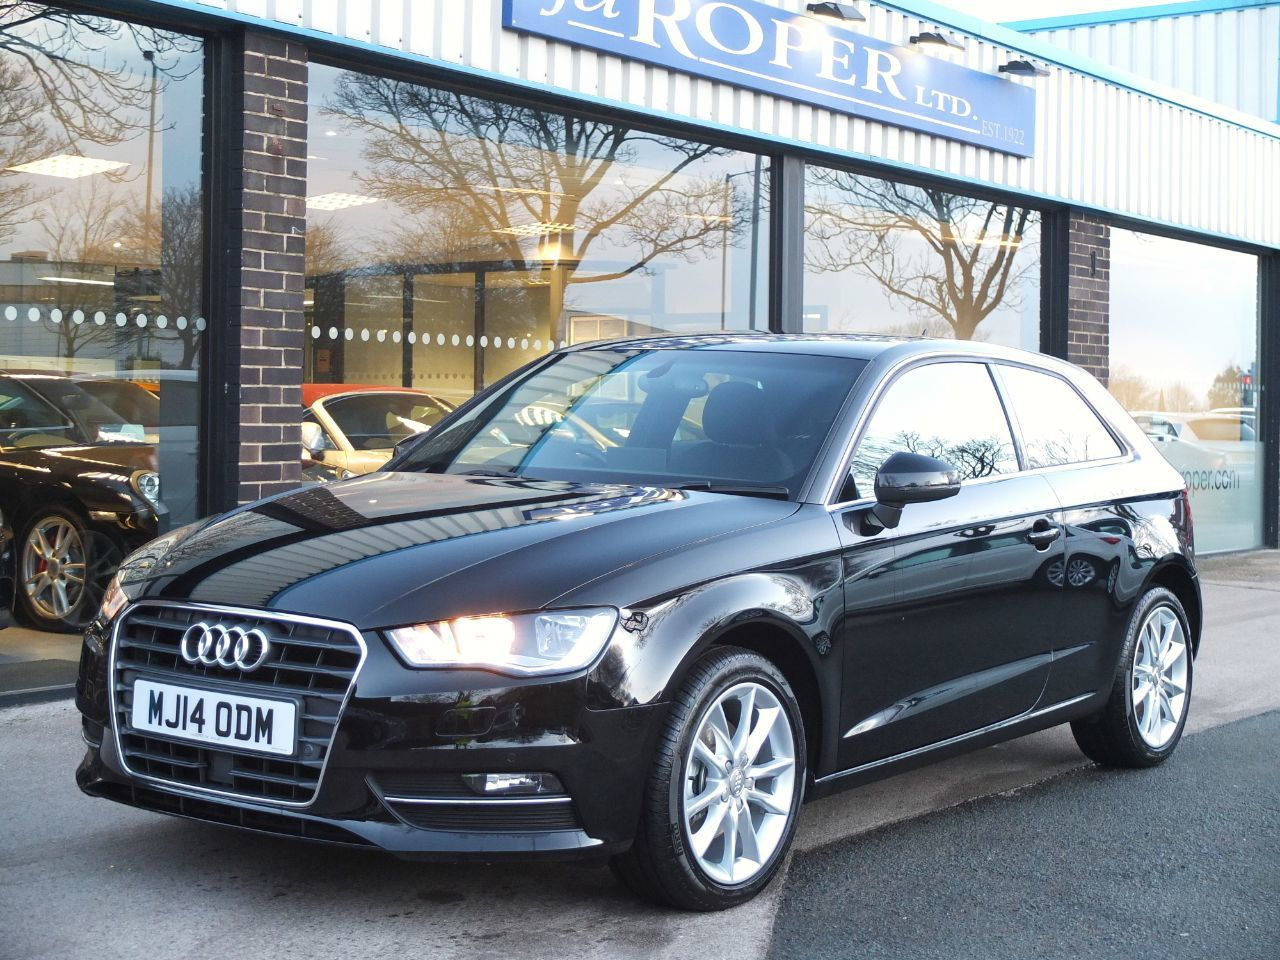 Audi A3 1.4 TFSI Sport 140 ps 3dr S Tronic Cylinder on Demand ++Spec Hatchback Petrol Brilliant BlackAudi A3 1.4 TFSI Sport 140 ps 3dr S Tronic Cylinder on Demand ++Spec Hatchback Petrol Brilliant Black at fa Roper Ltd Bradford